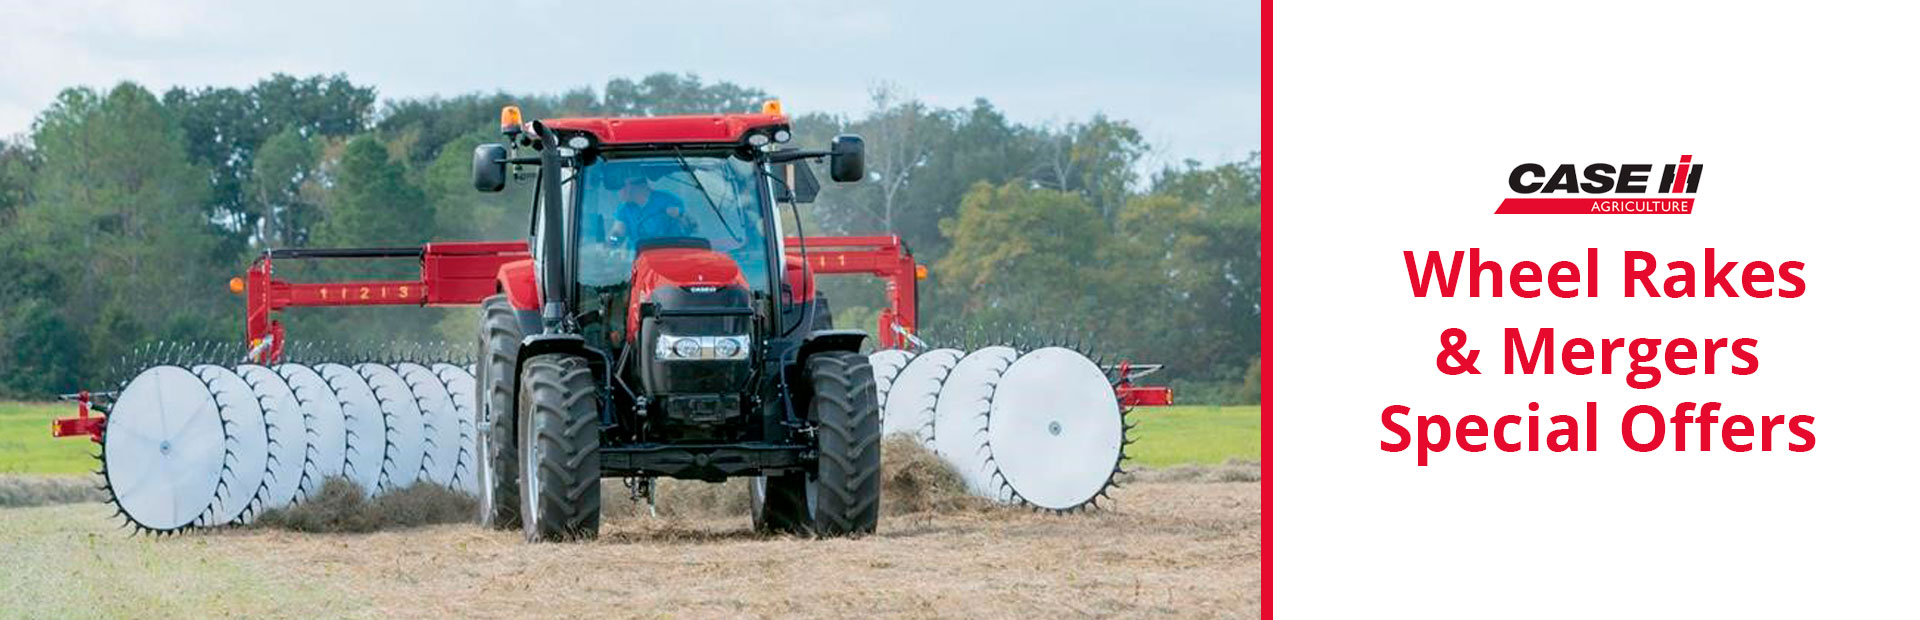 Case IH: Wheel Rakes & Mergers Special Offers